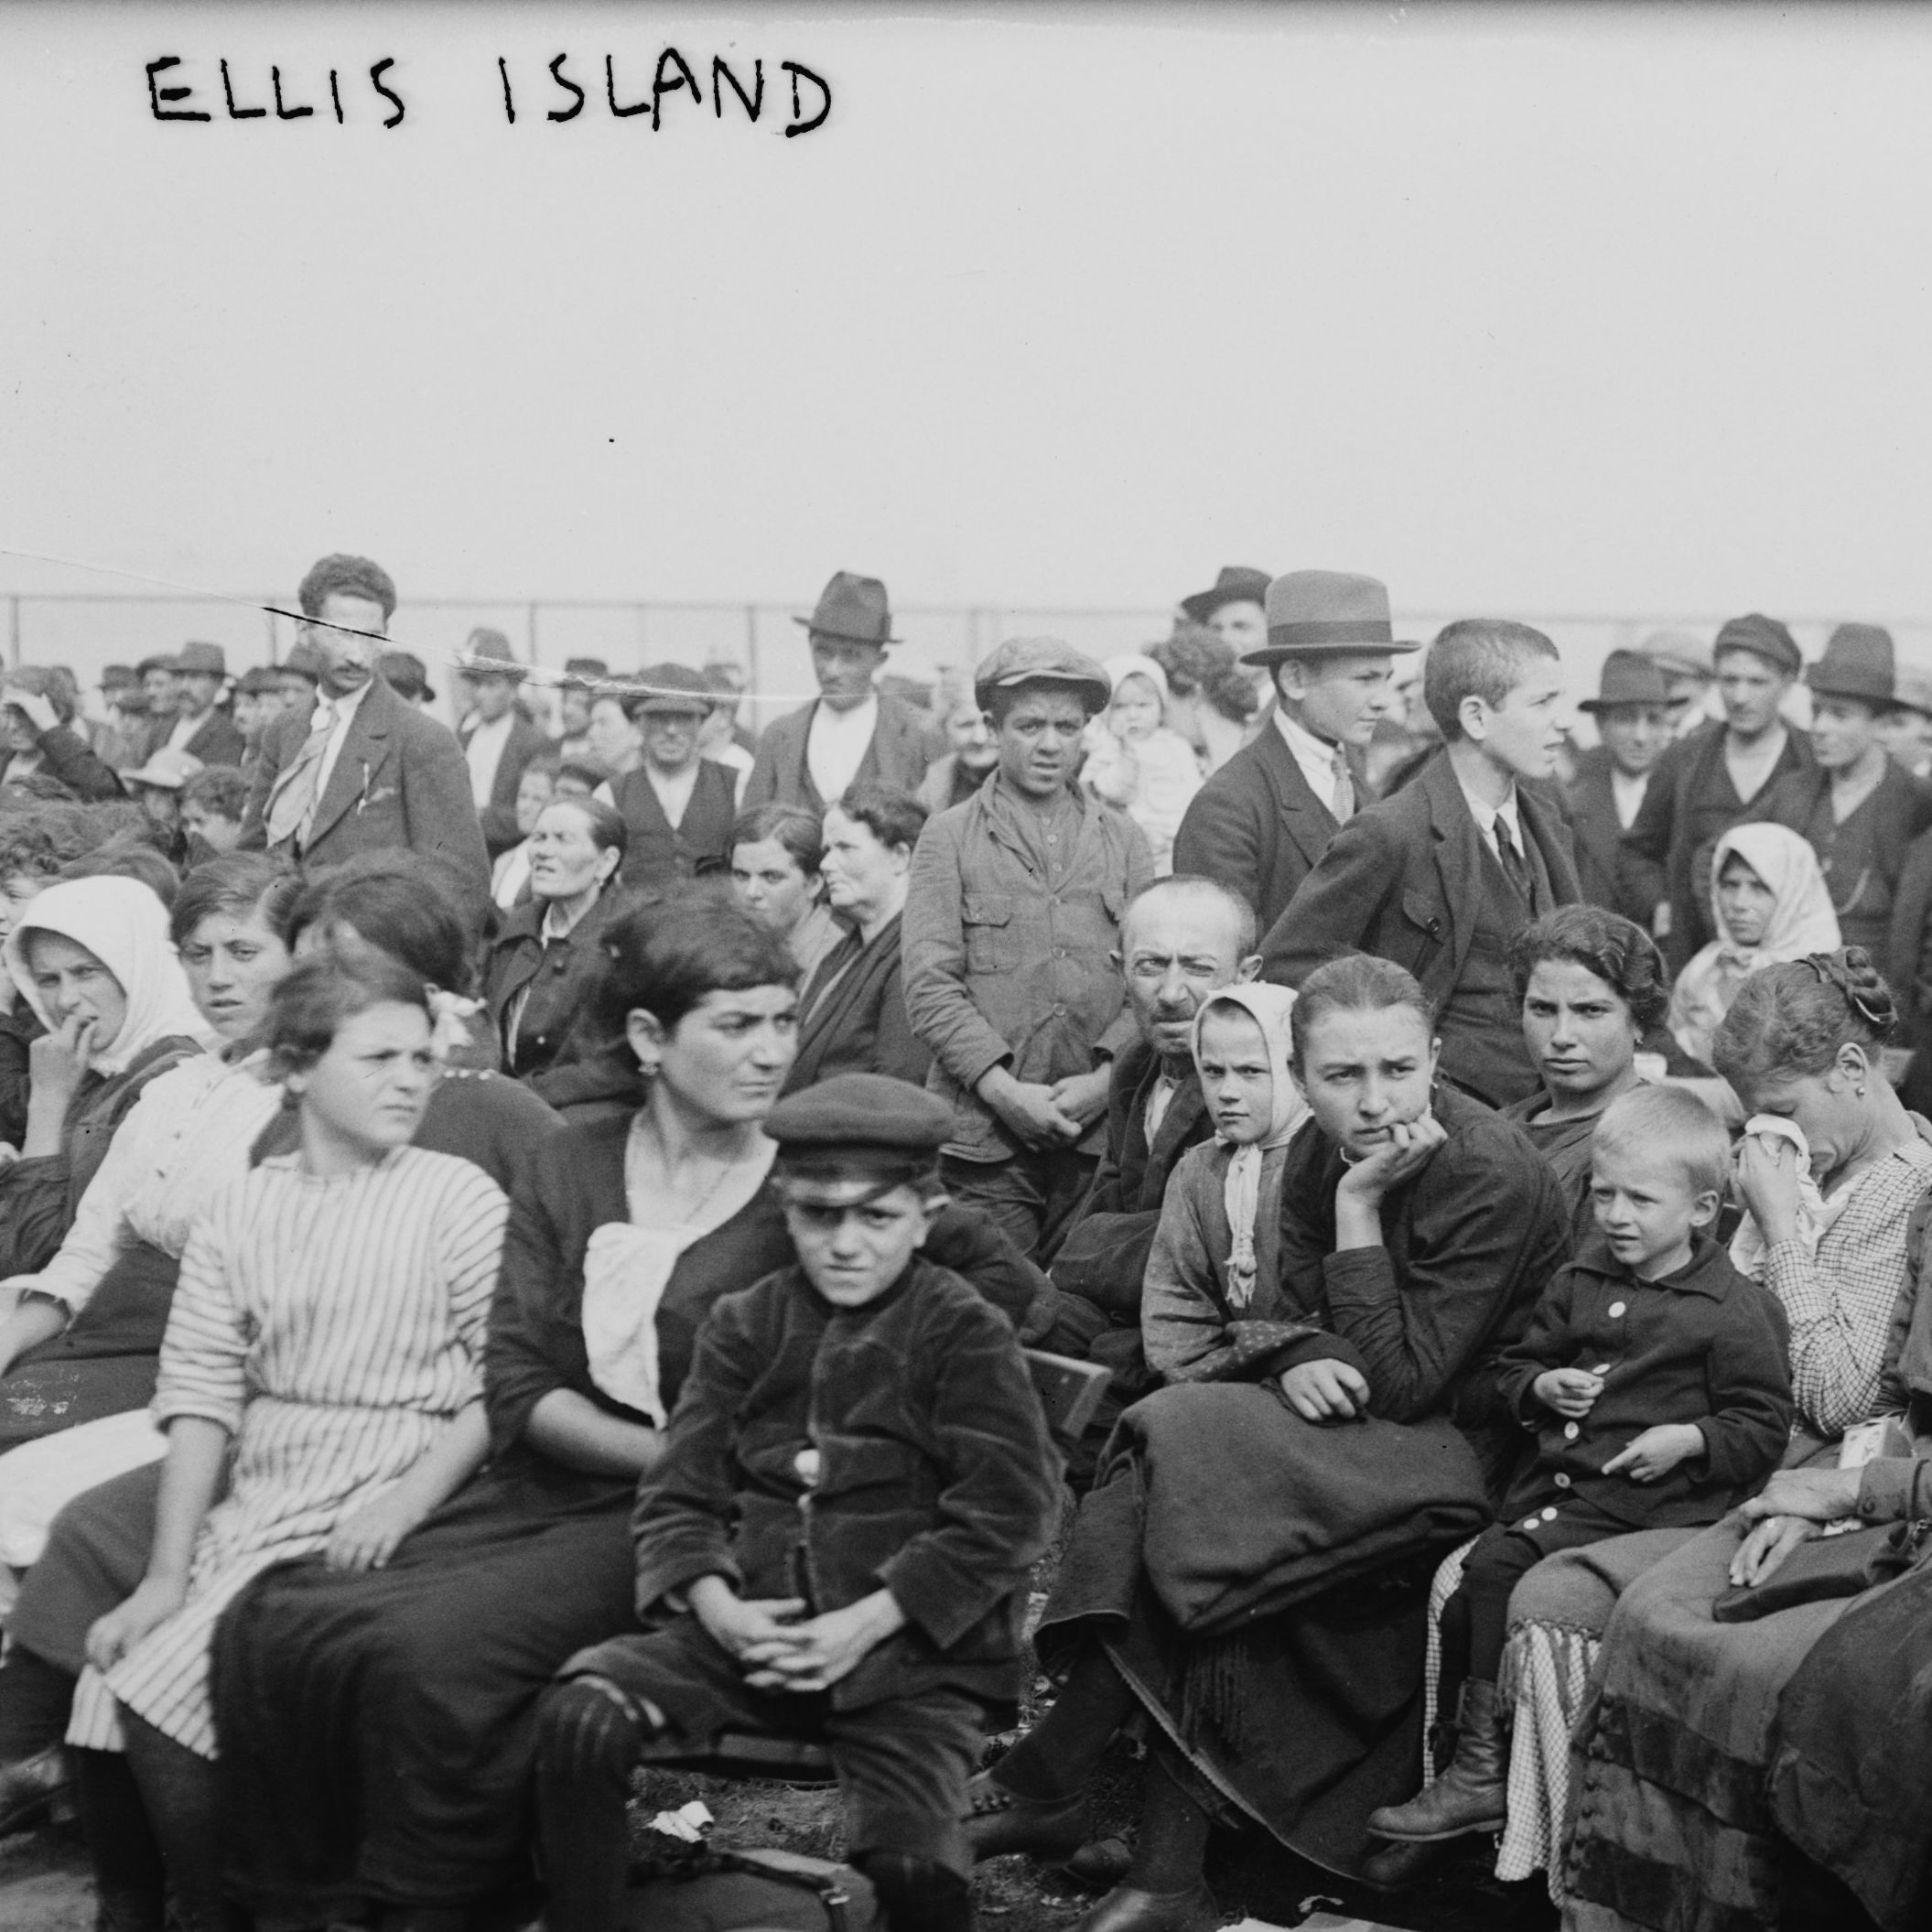 Deporting Ottoman Americans